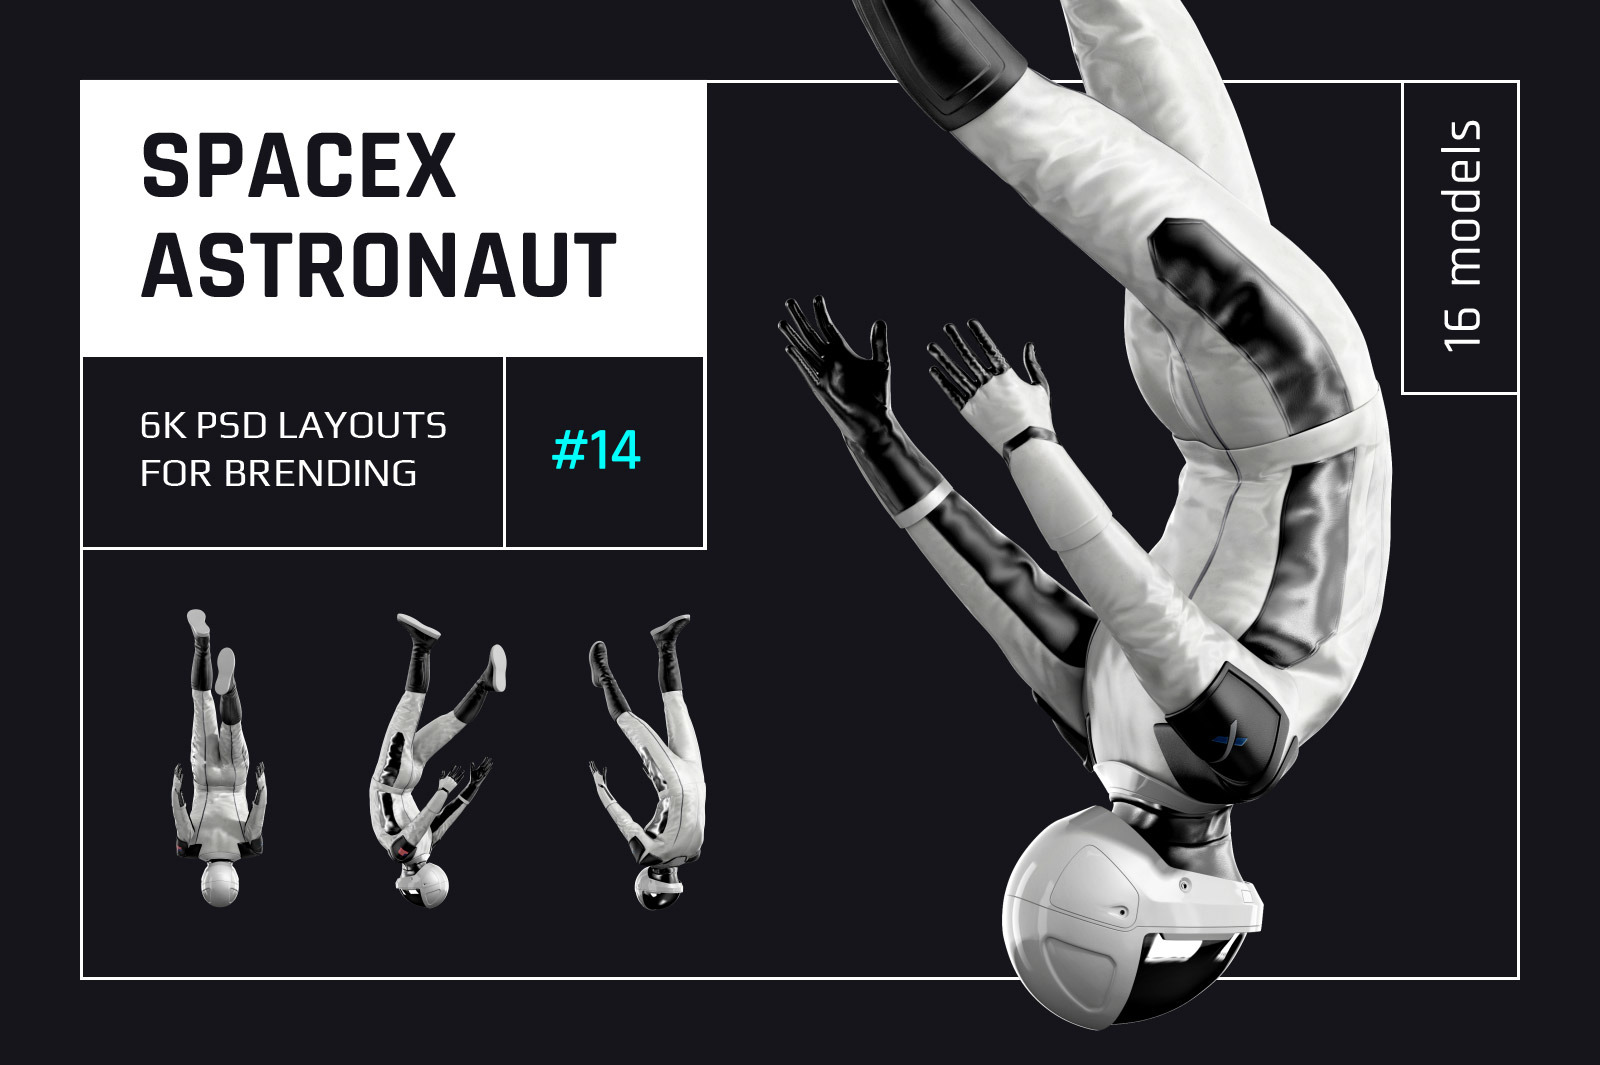 PSD Mockup 3D model SpaceX Astronaut #14